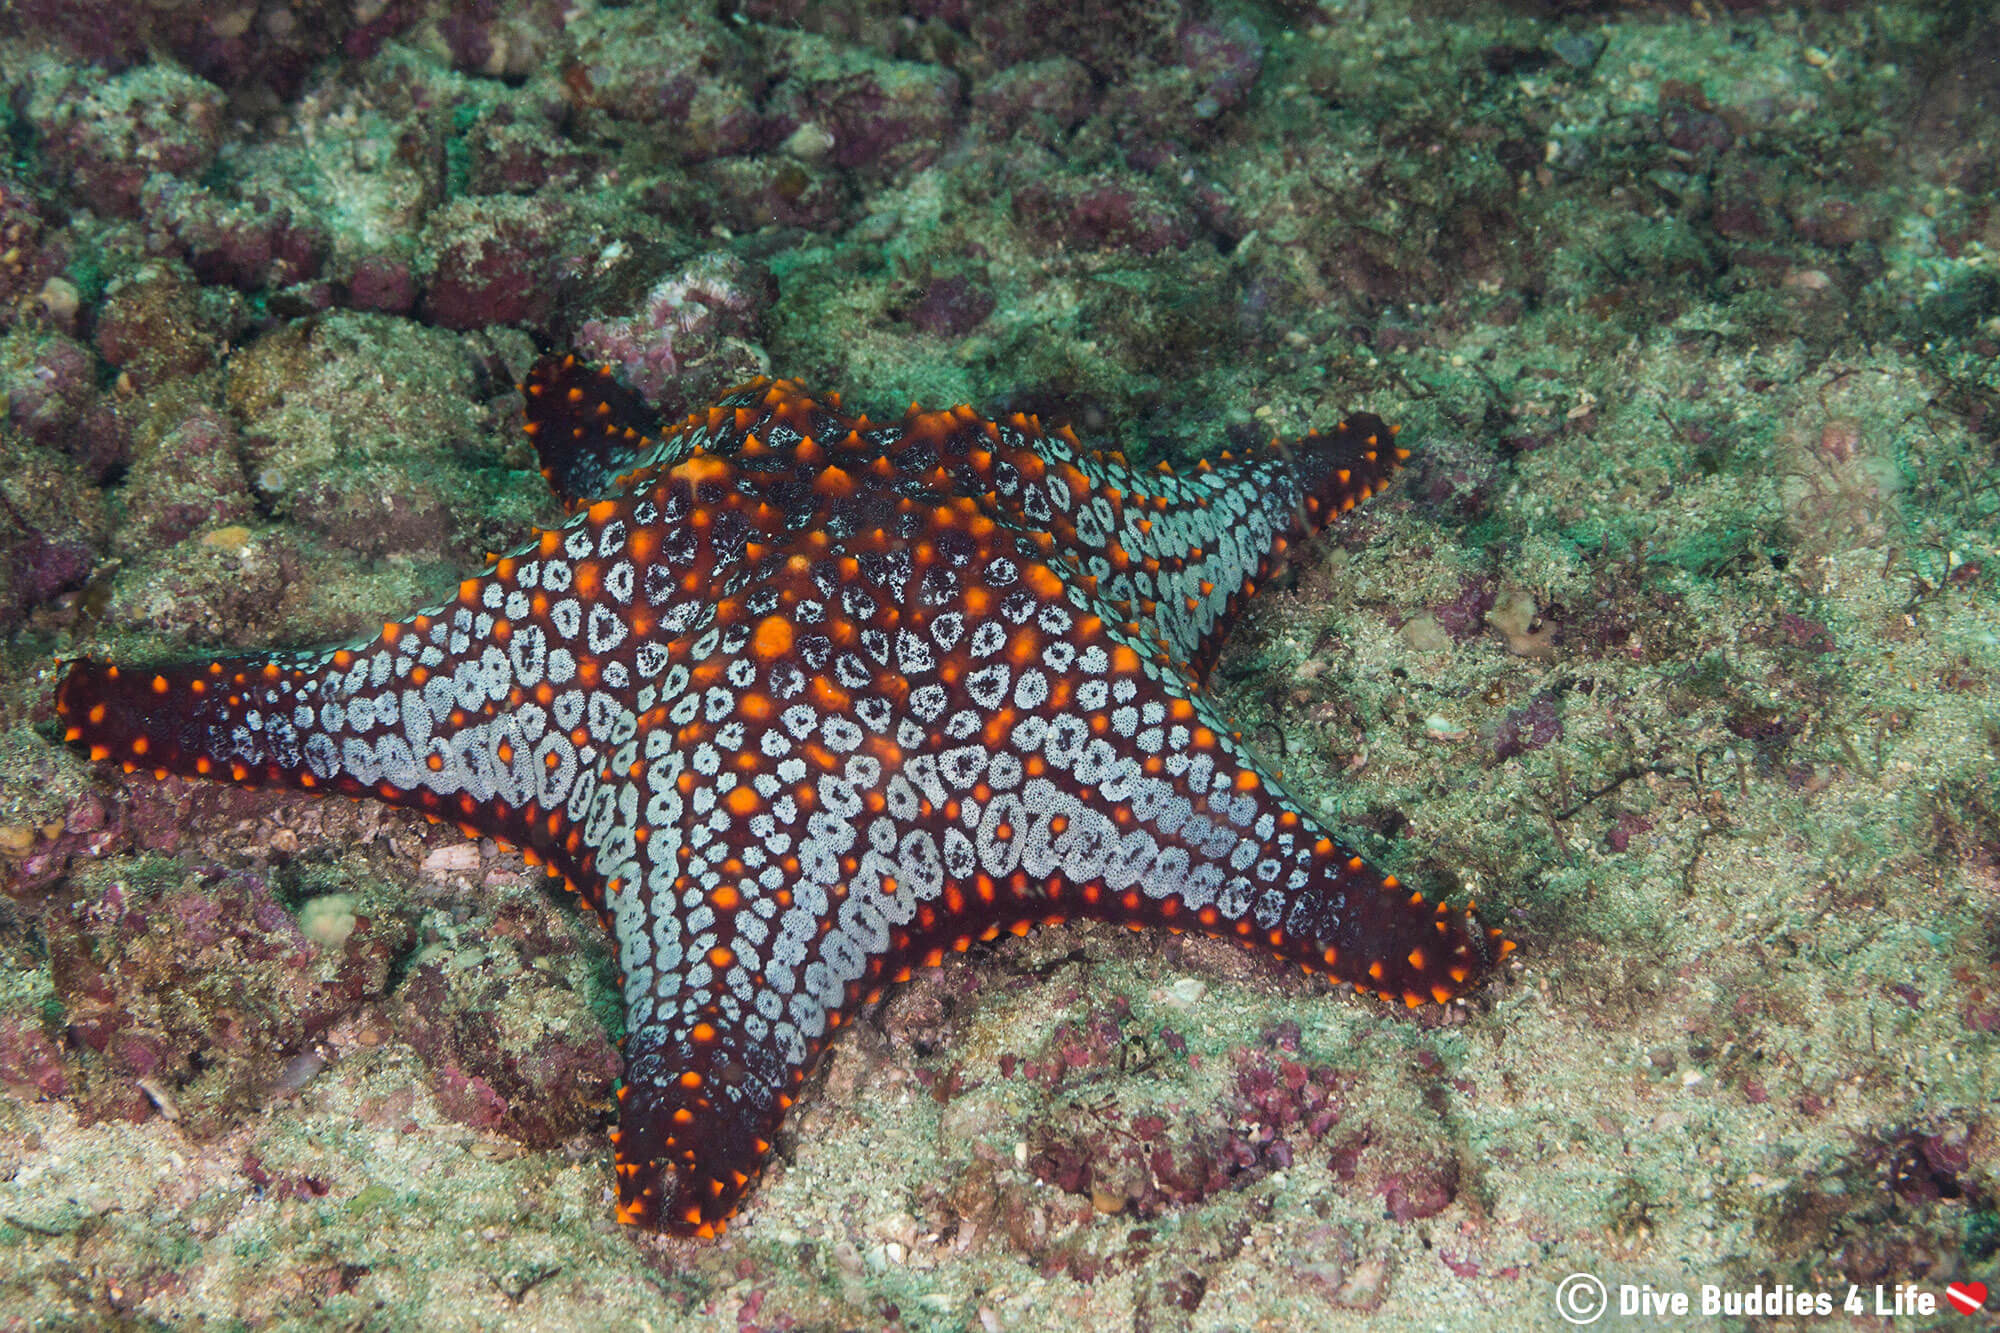 Panamic Cushion Star On The Bottom Of The Catalina Islands In Costa Rica, Central America